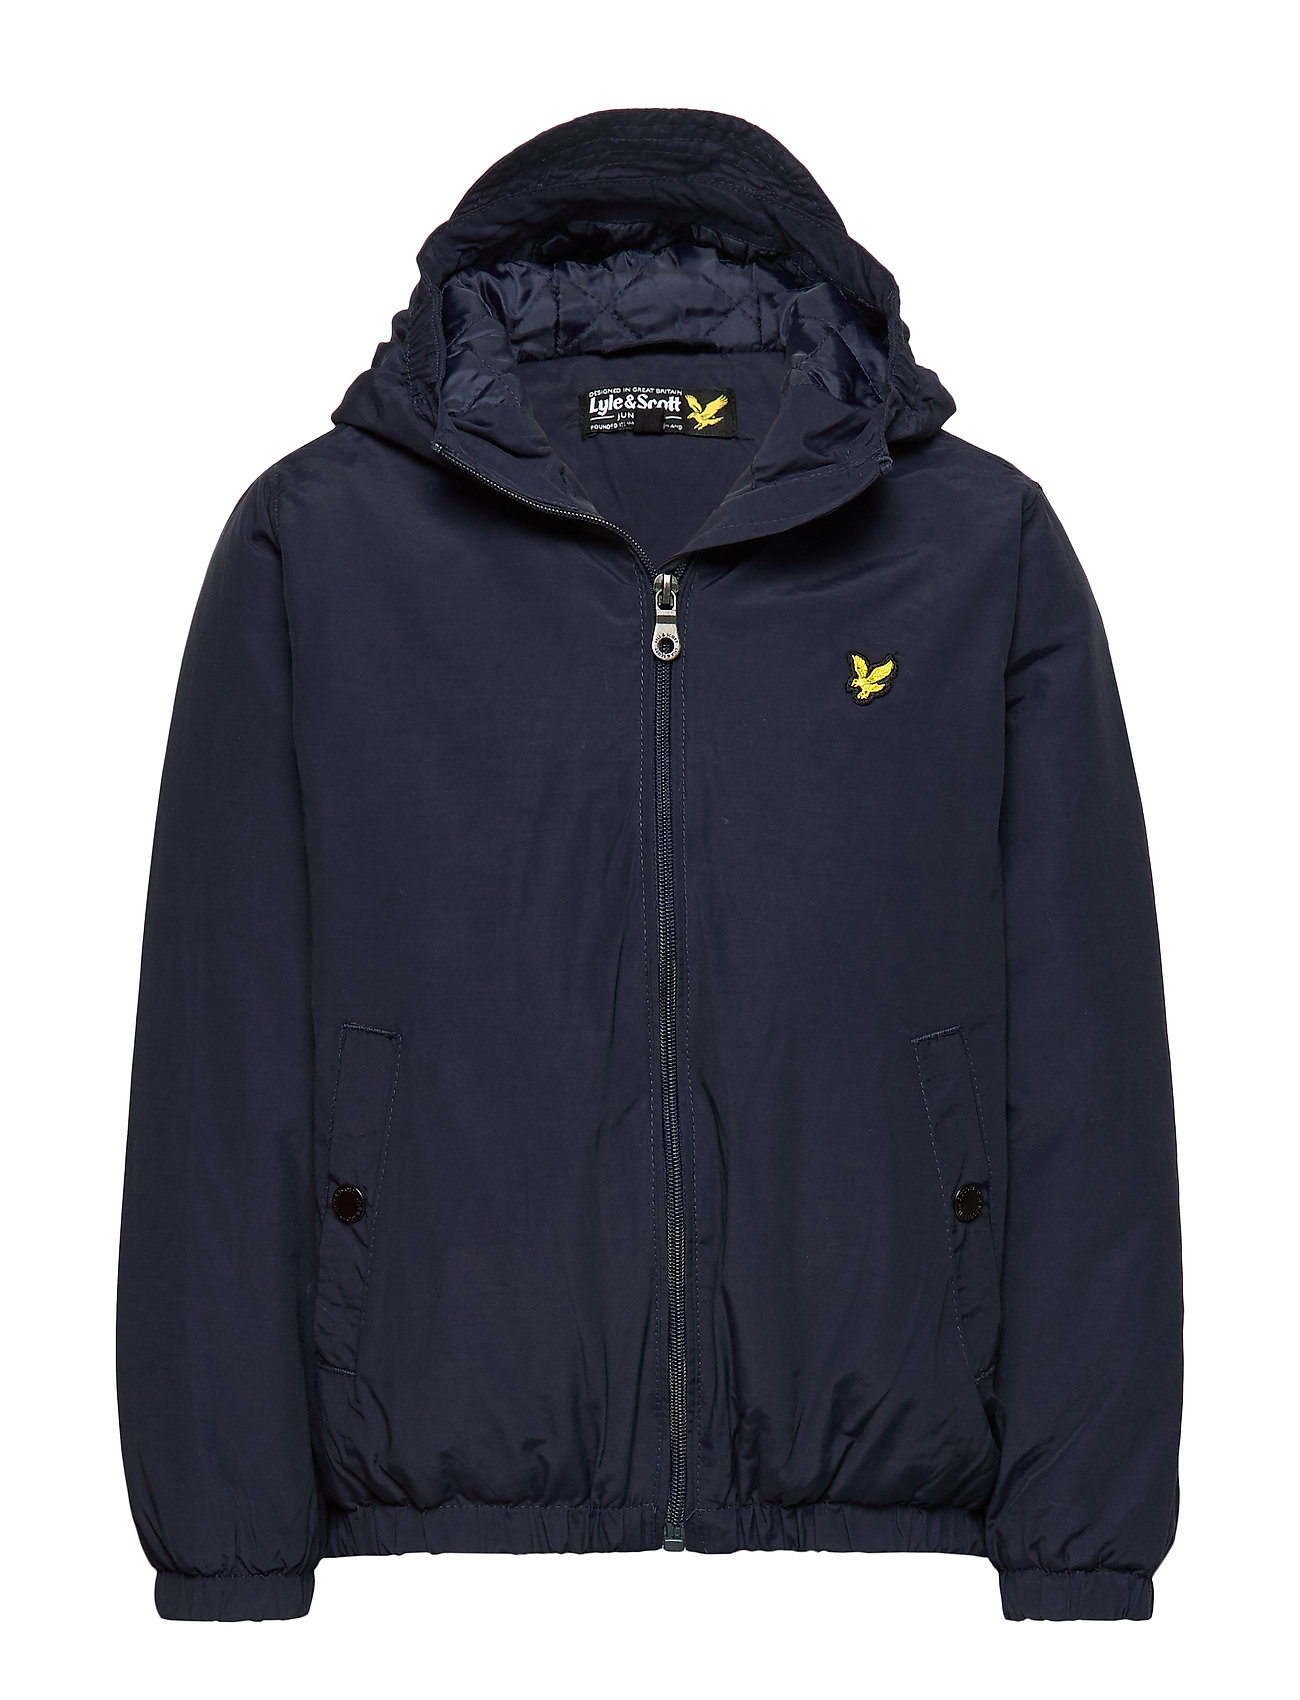 Lyle & Scott Junior Zip Through Hooded Jacket - NAVY BLAZER